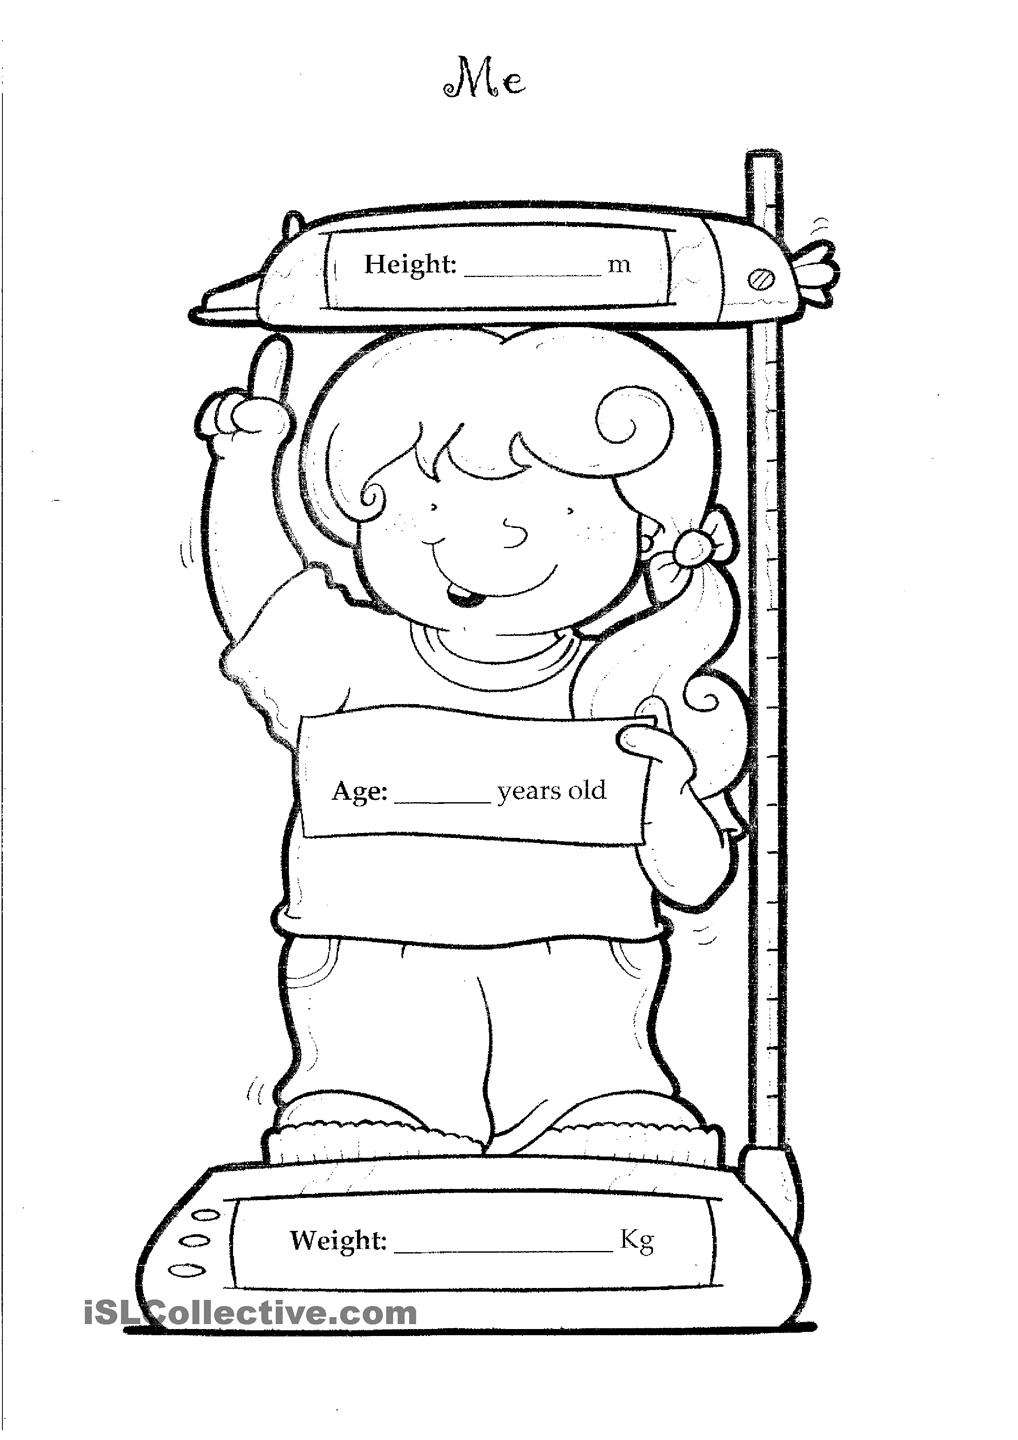 All about me coloring pages to